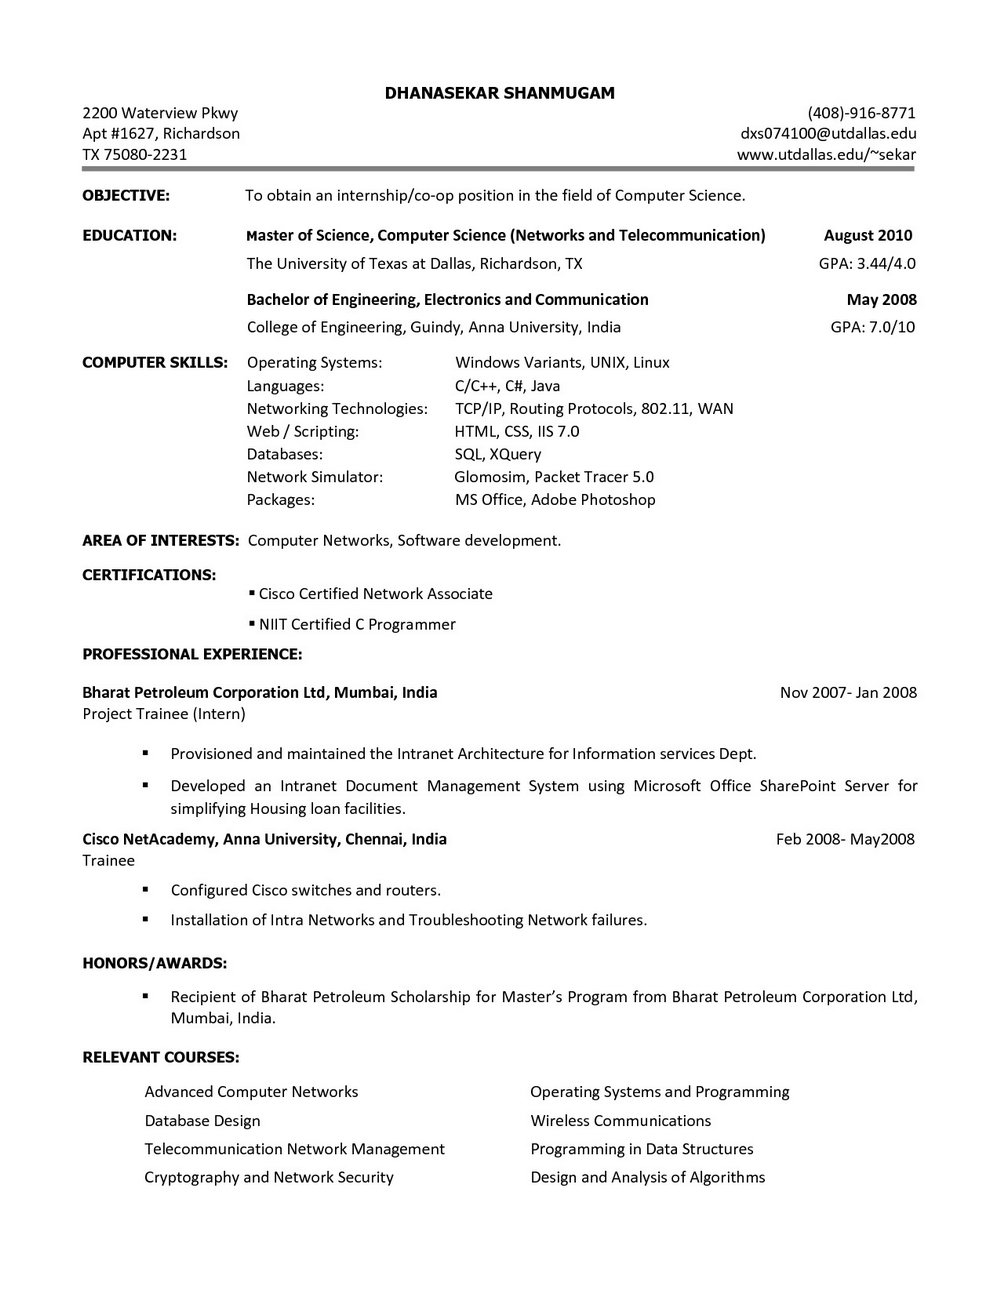 Resume Builder Template Free Download